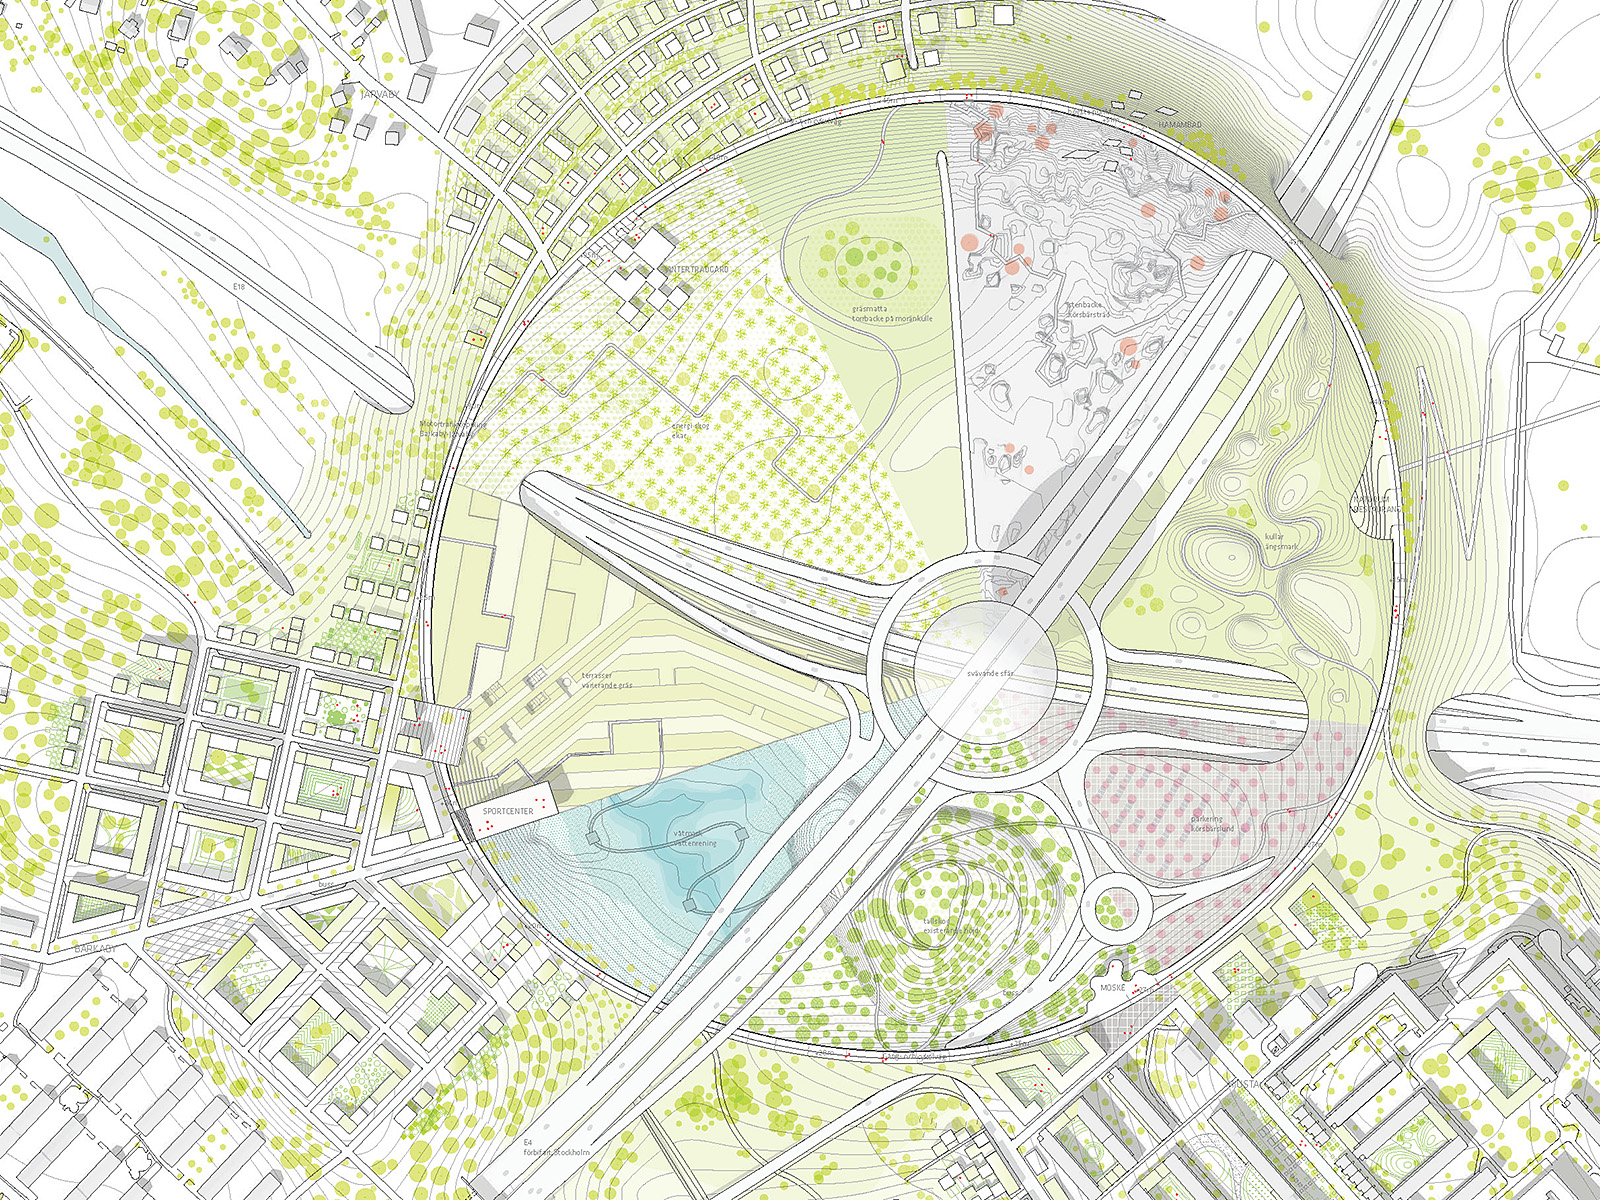 Urban planning: Stockholmsporten master plan